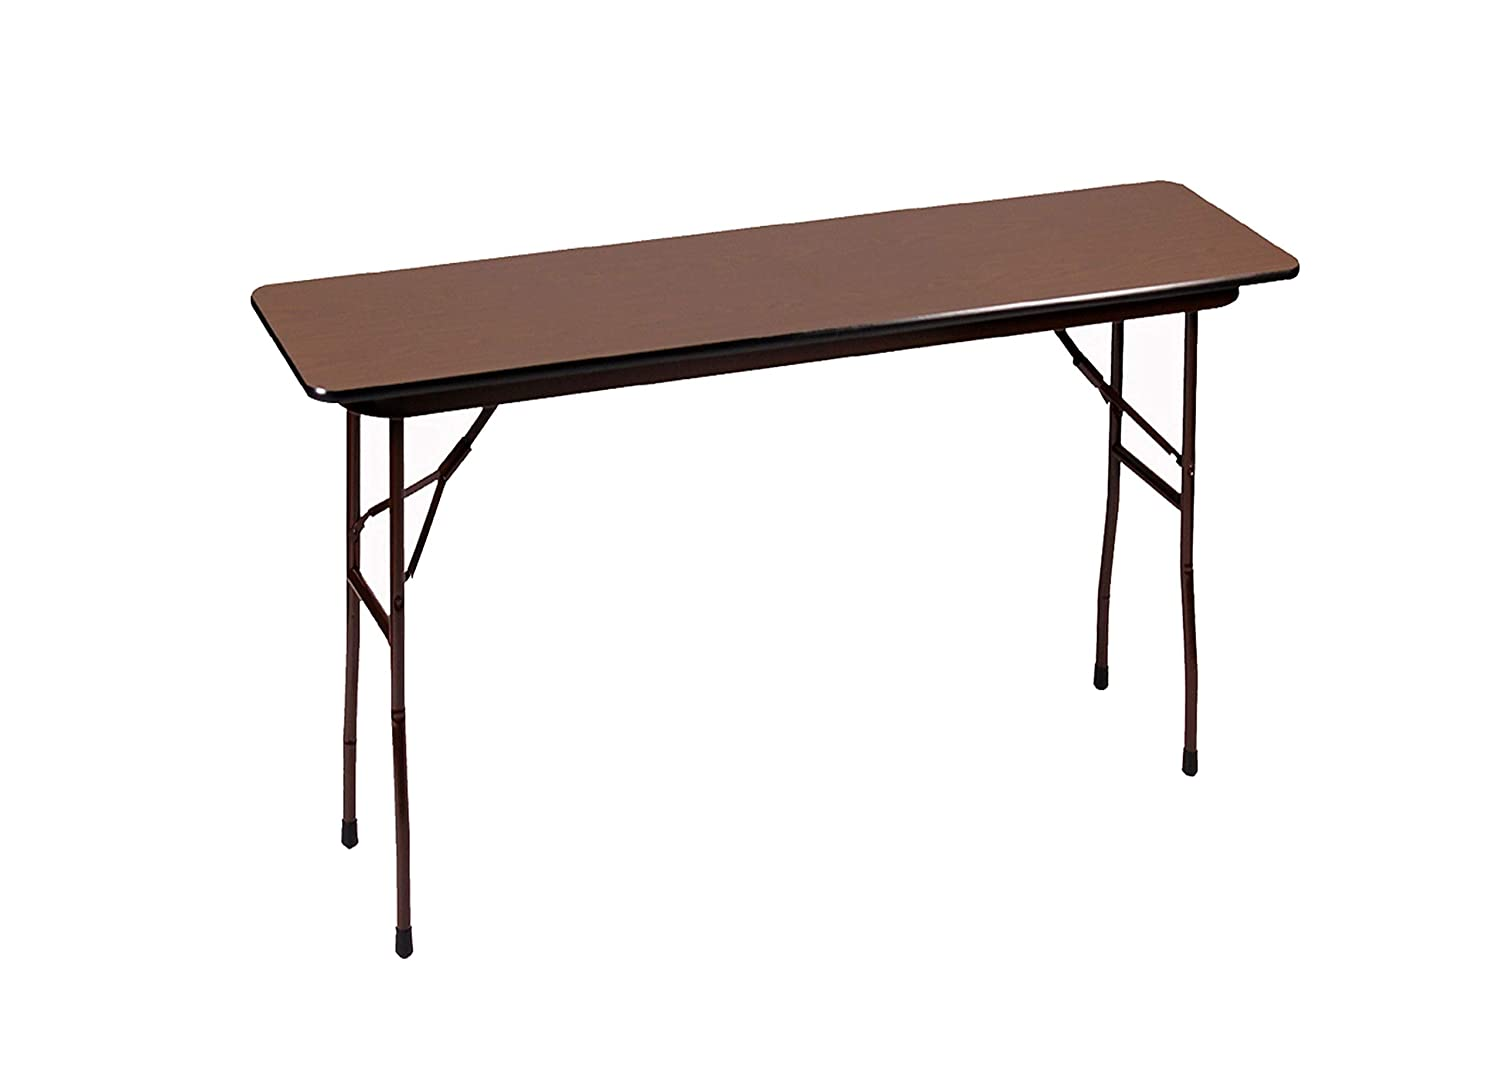 Correll CF1848M-01 18 Width x 48 Length x 29 Height Walnut Rectangular Melamine Fixed Height Top Folding Table